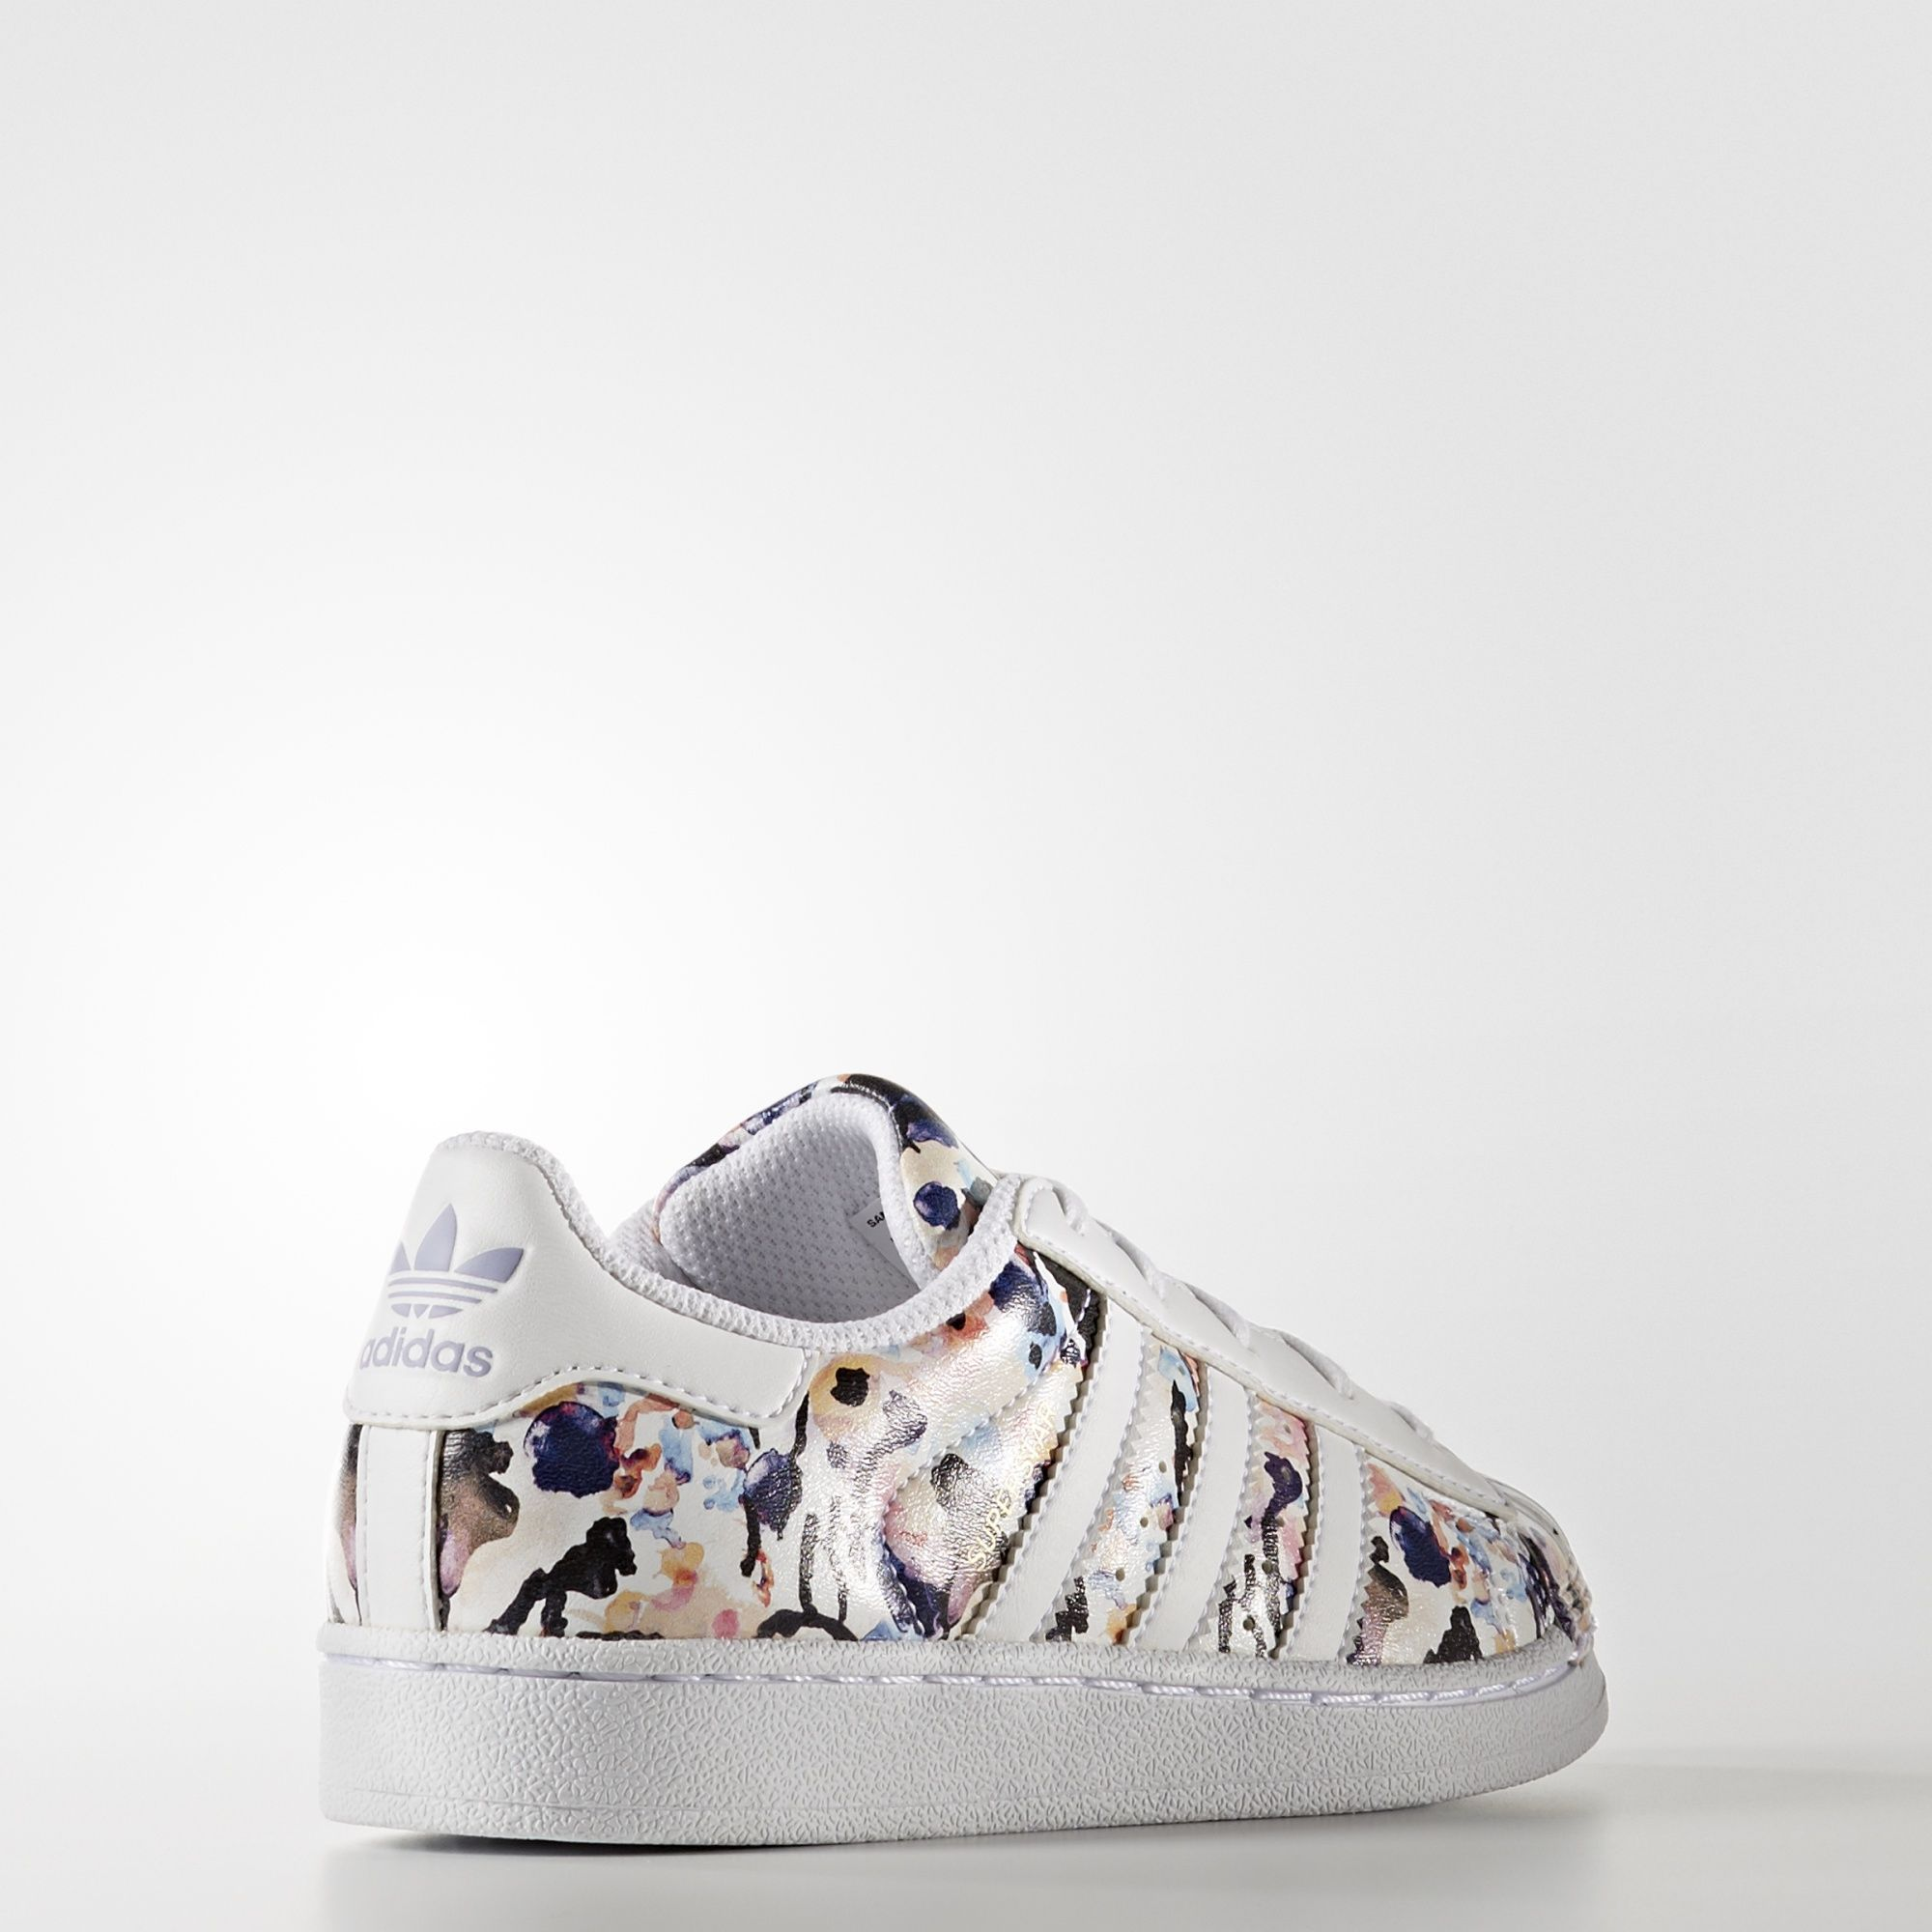 adidas superstar niño 32